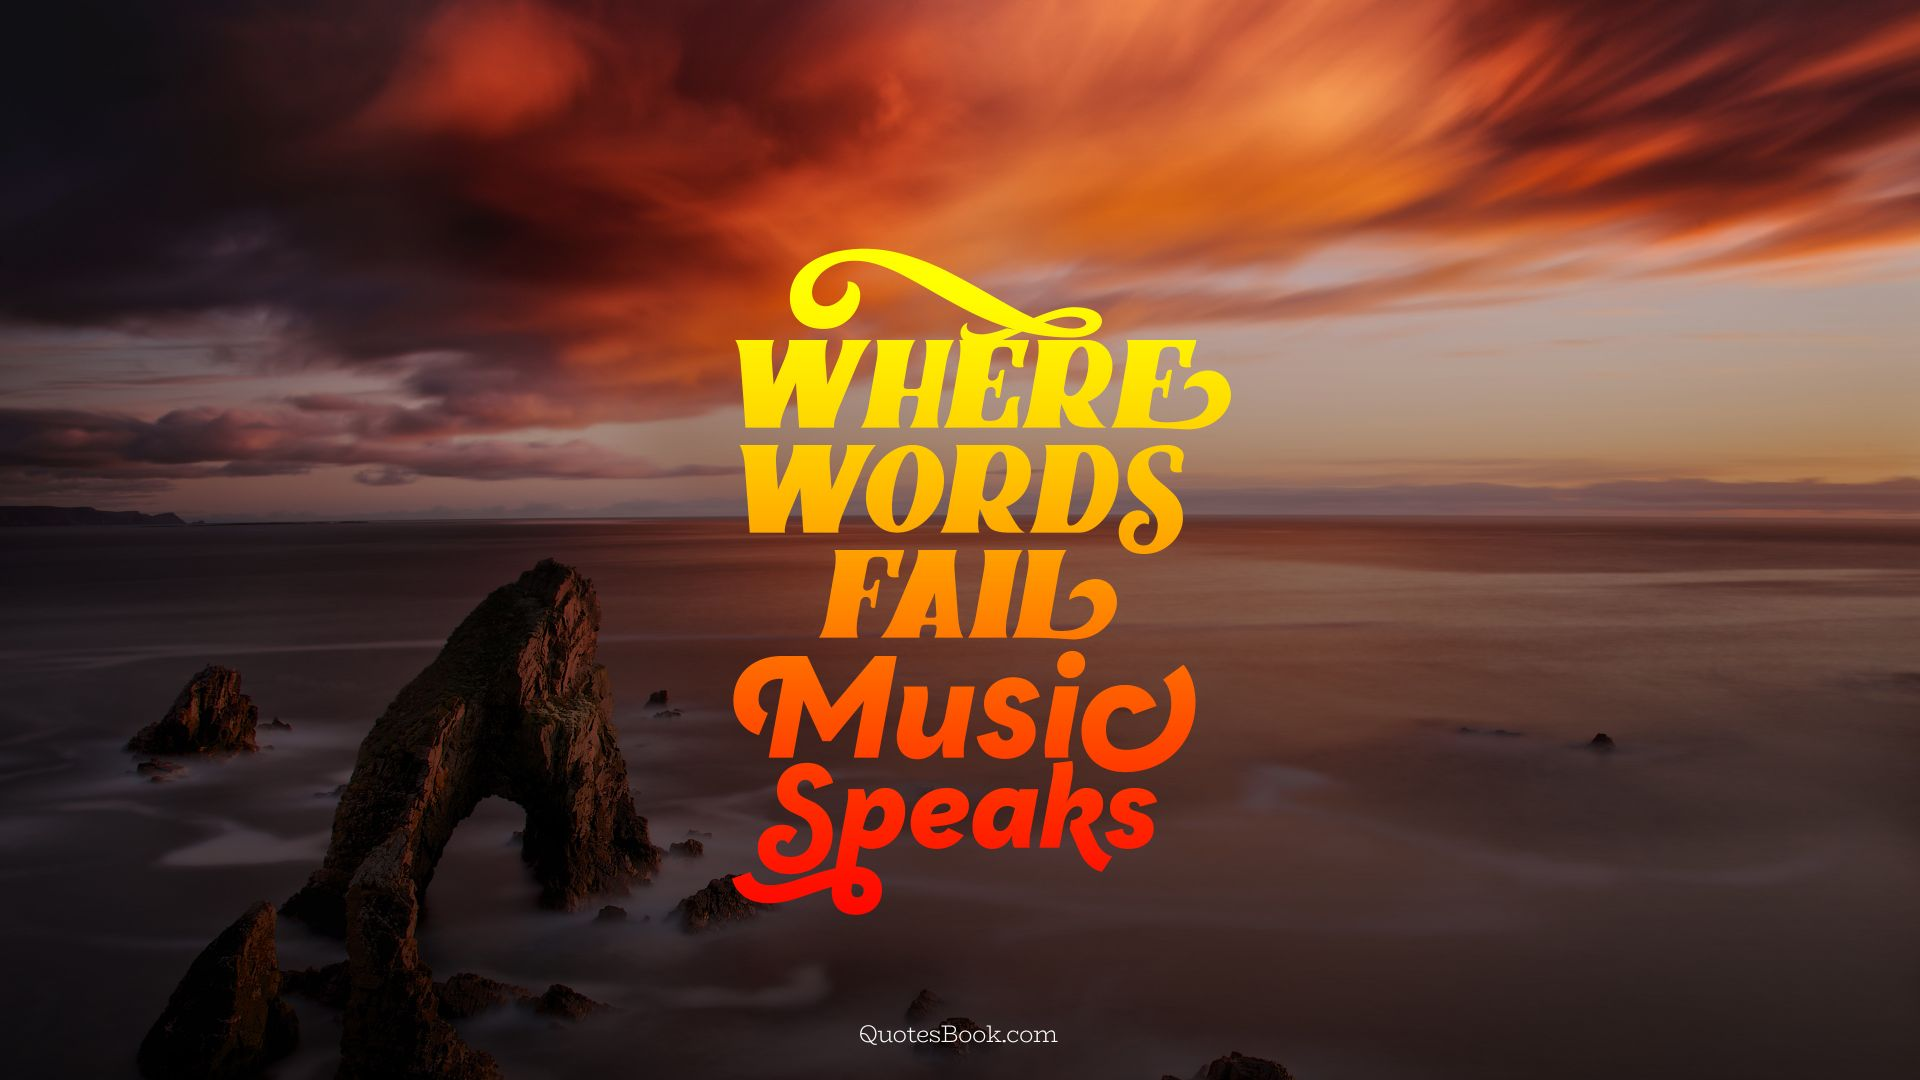 Where Words Fail Music Speaks Quotesbook